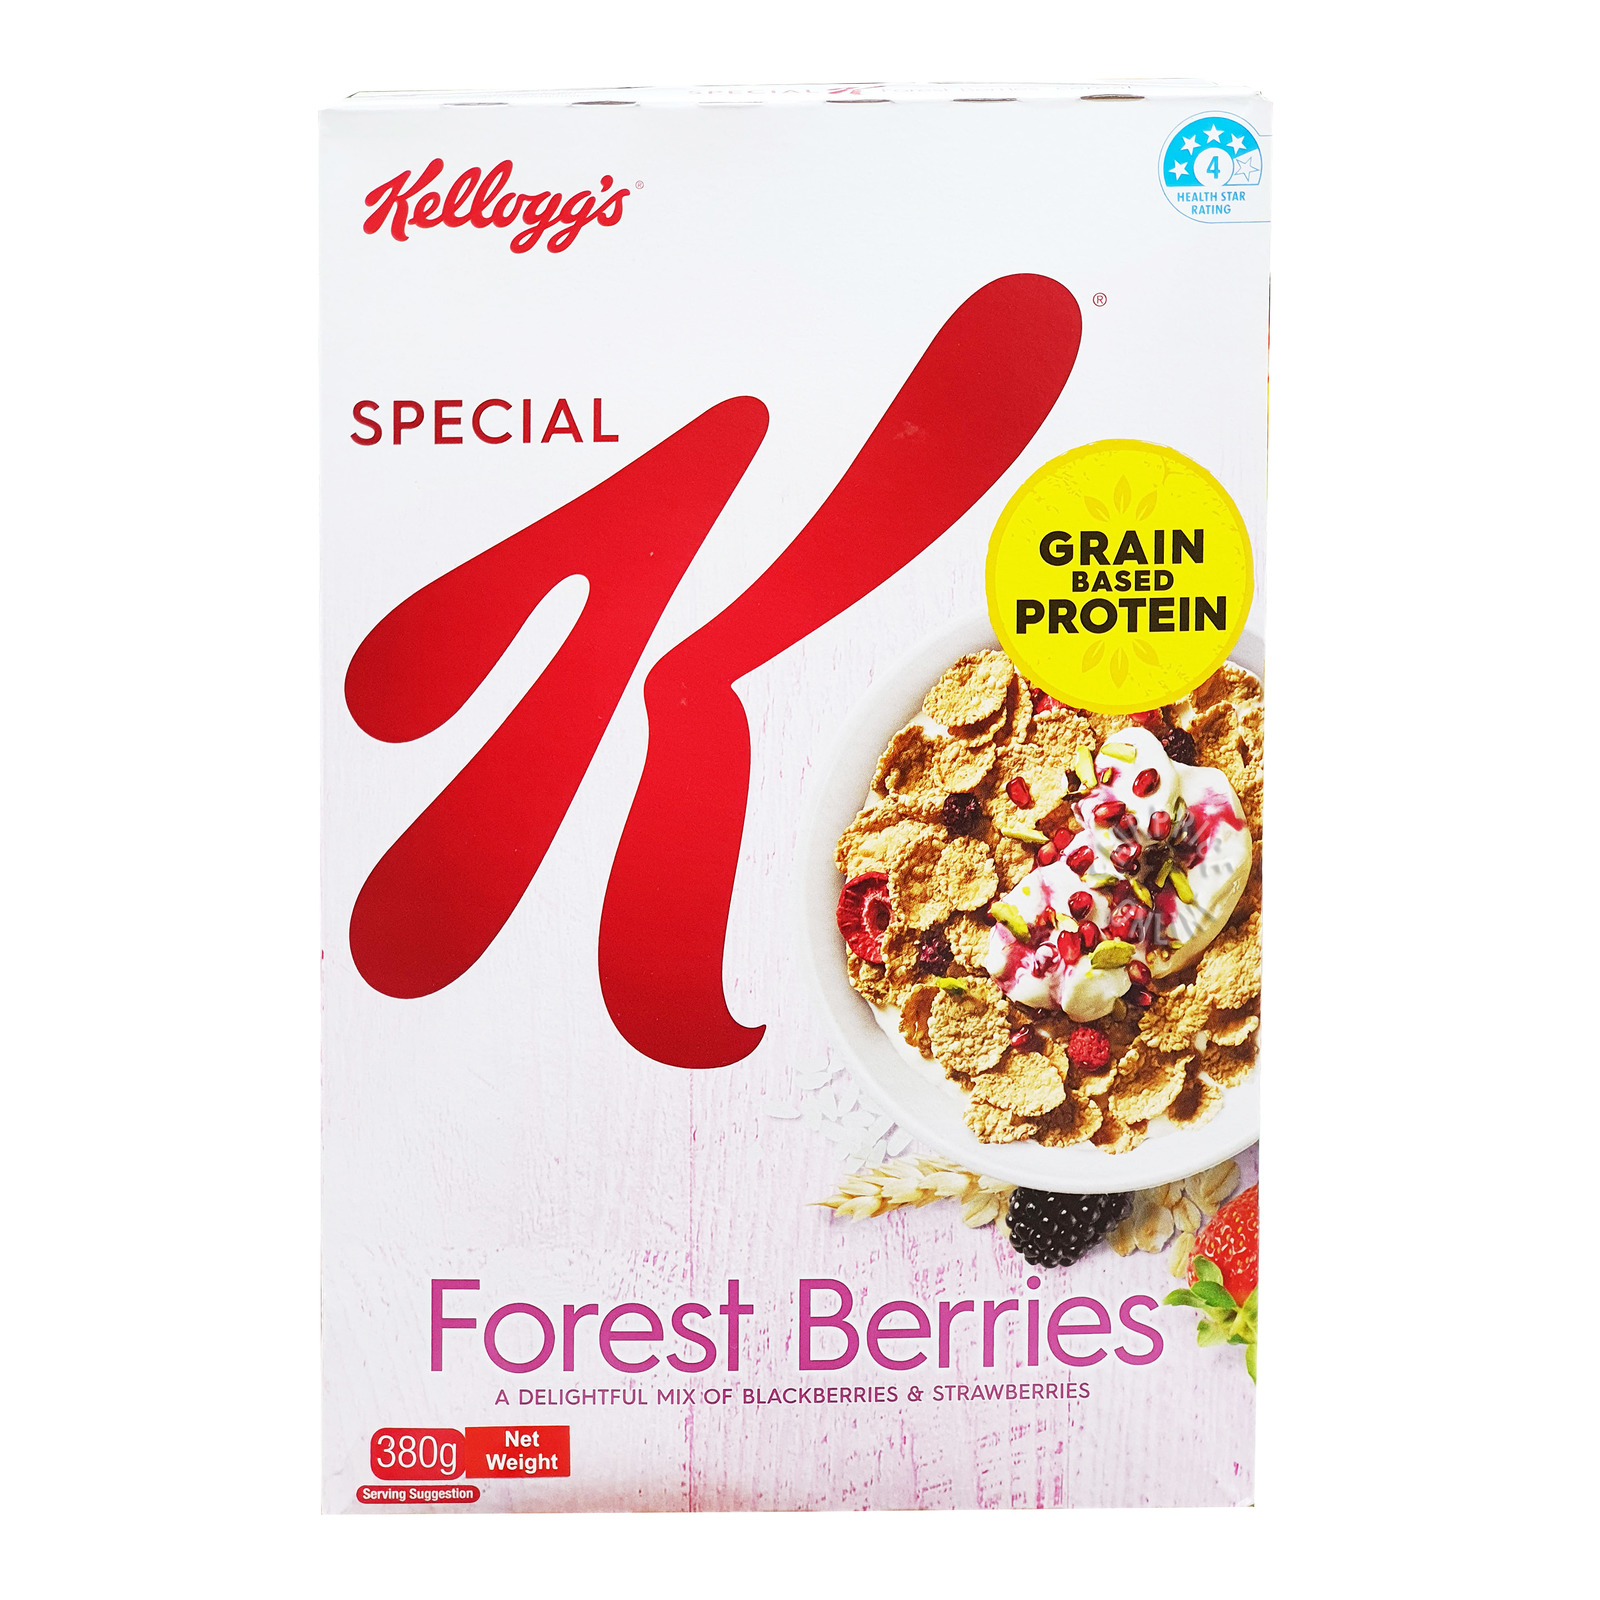 Kellogg's Special K Cereal - Forest Berries